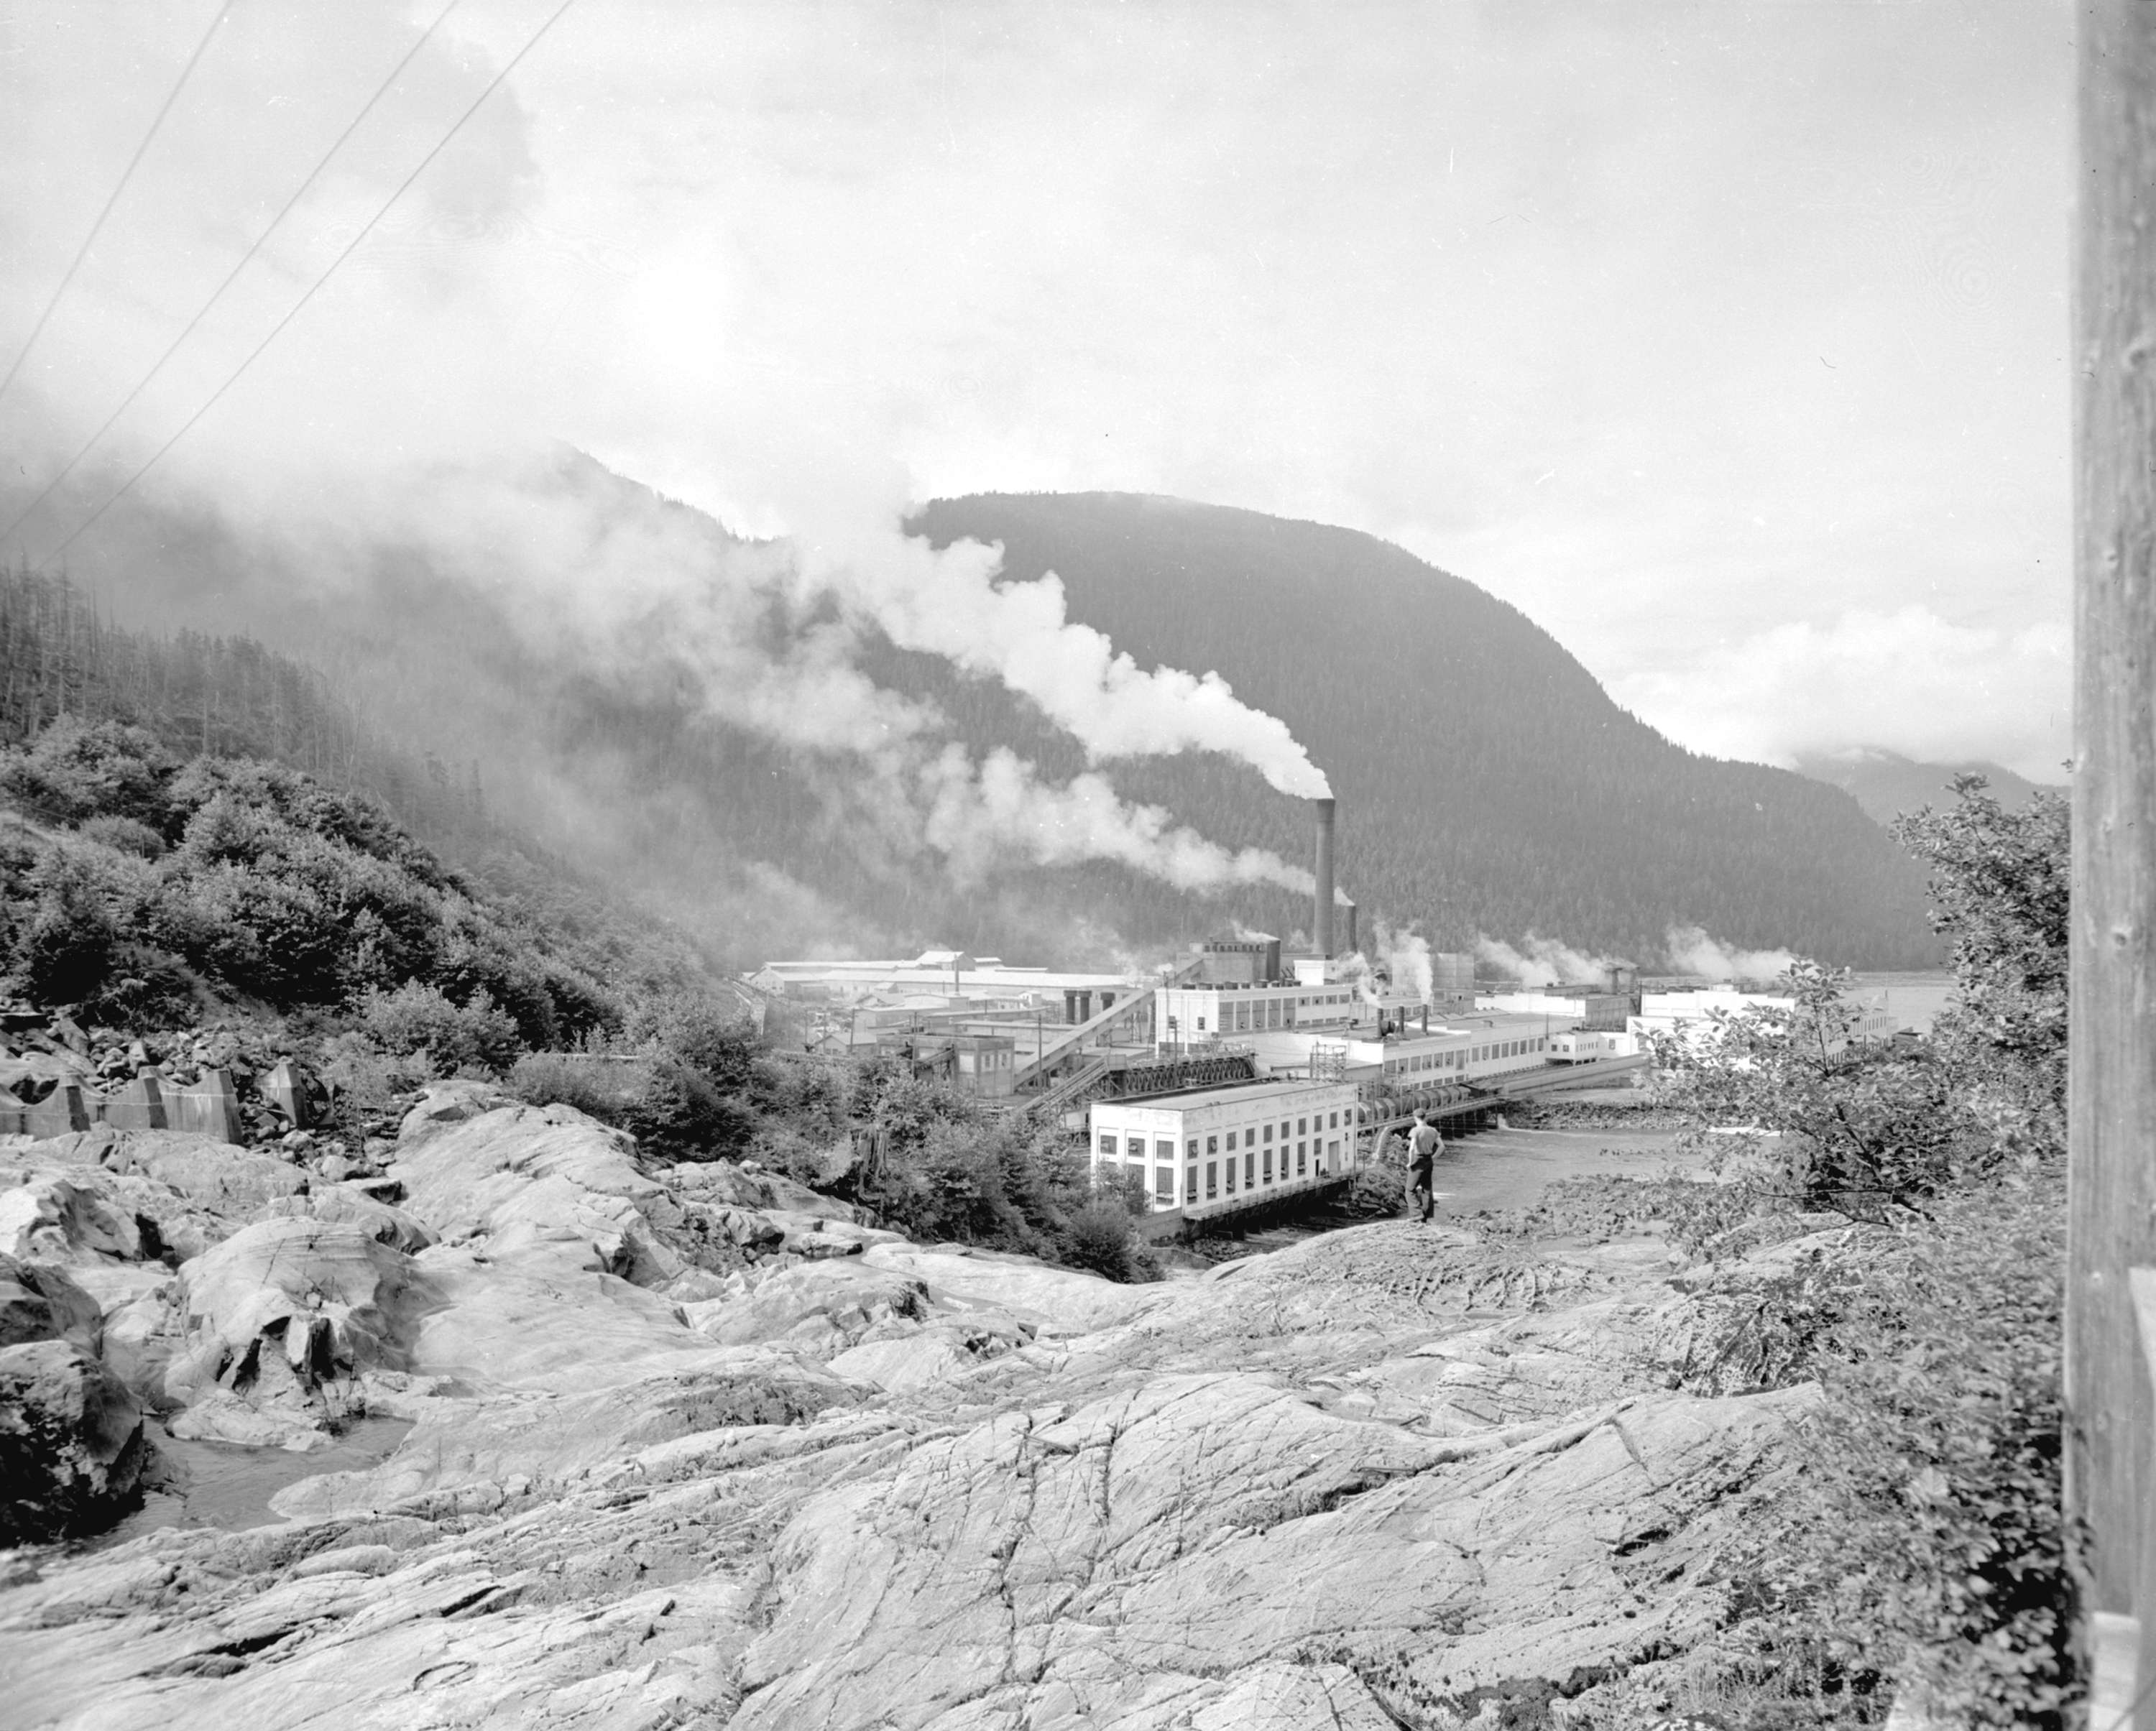 View of [Pacific] Mills, Ocean Falls - City of Vancouver Archives